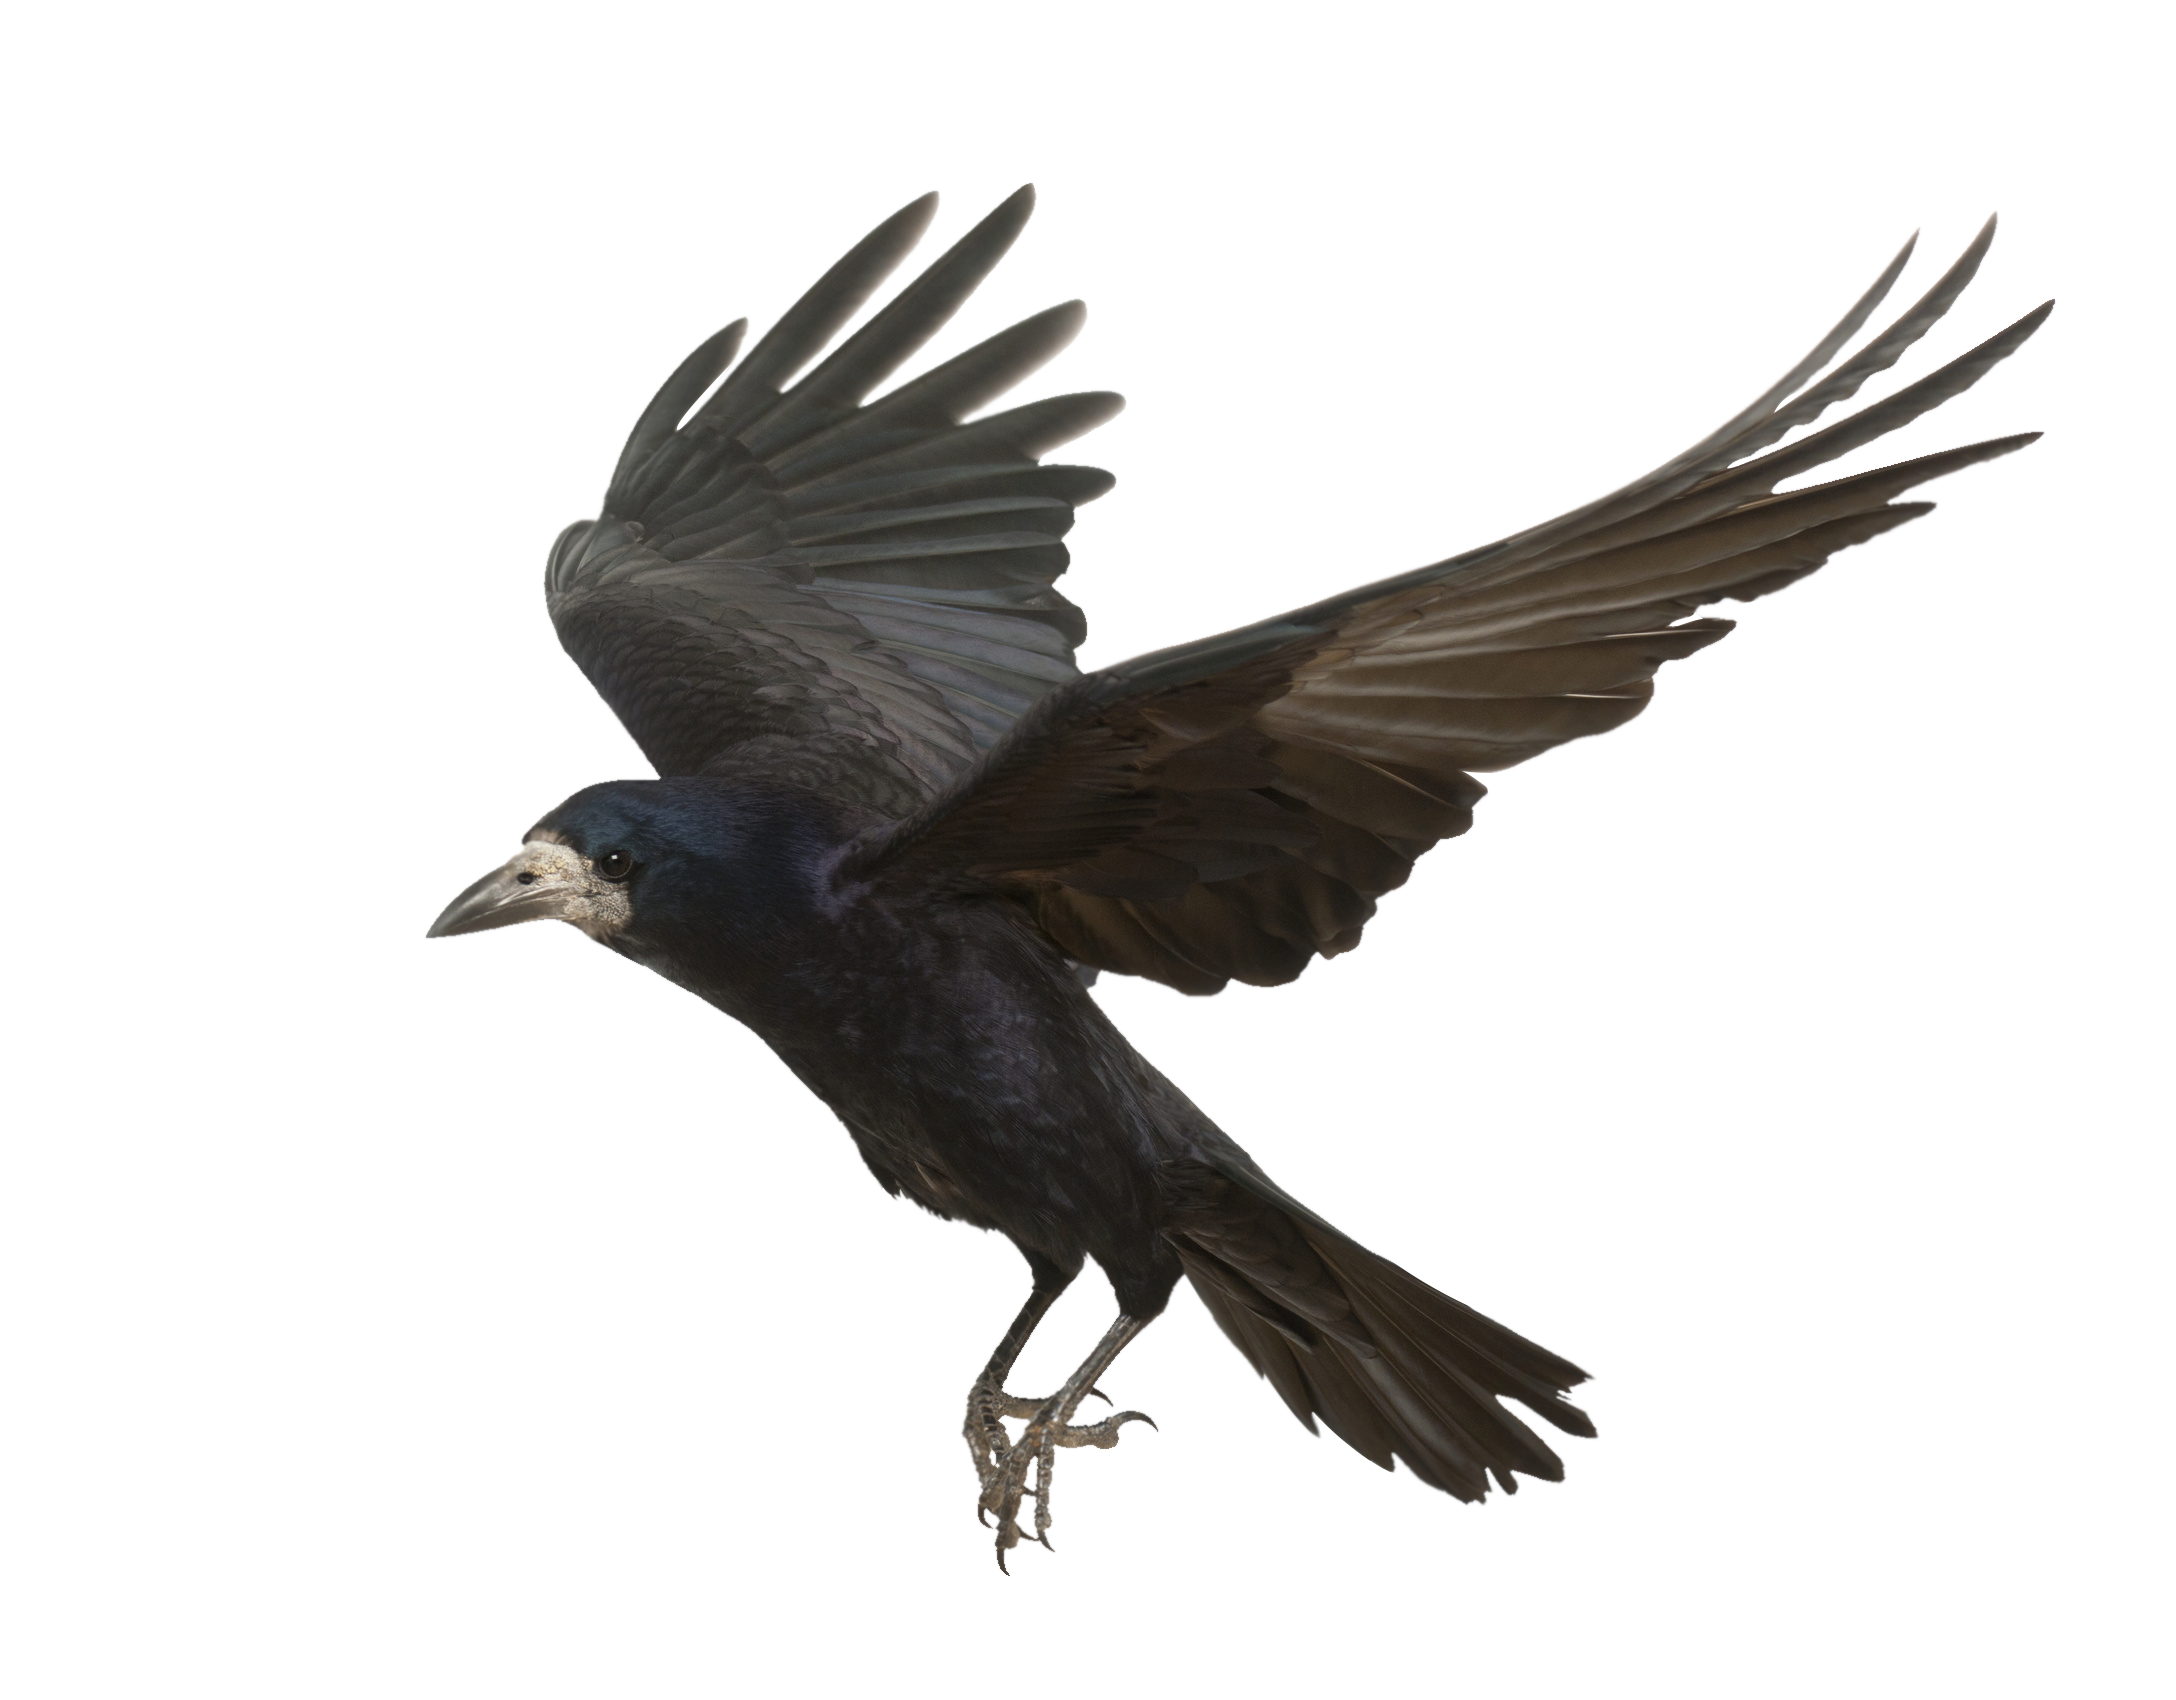 Flying crow png. Rook common raven bird